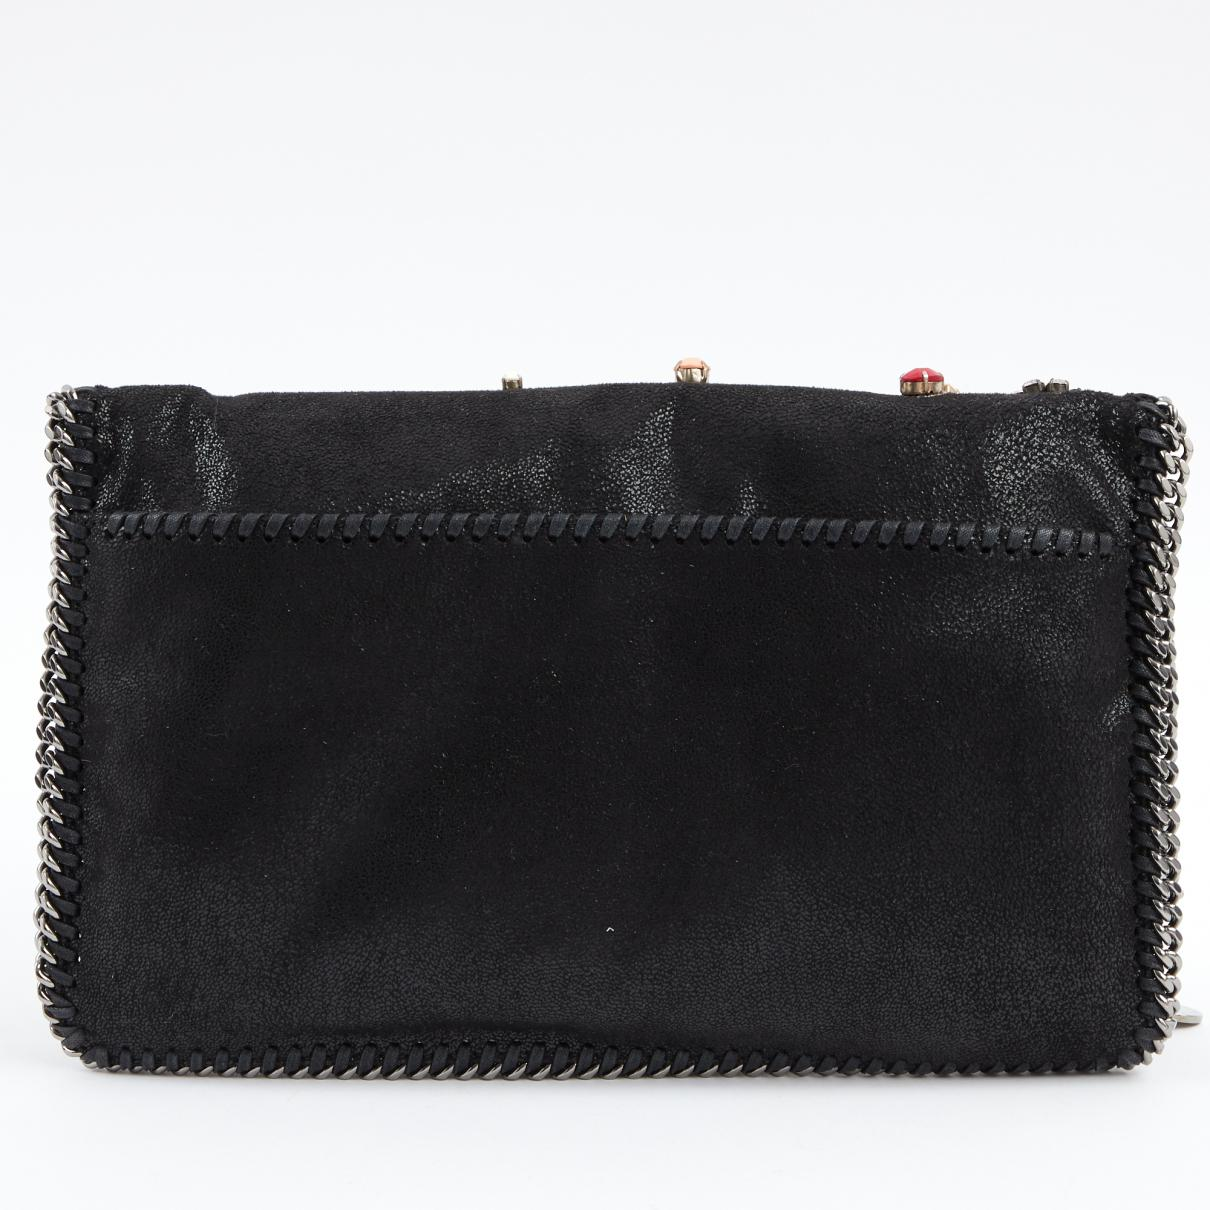 Stella McCartney Pre-owned - Falabella clutch bag